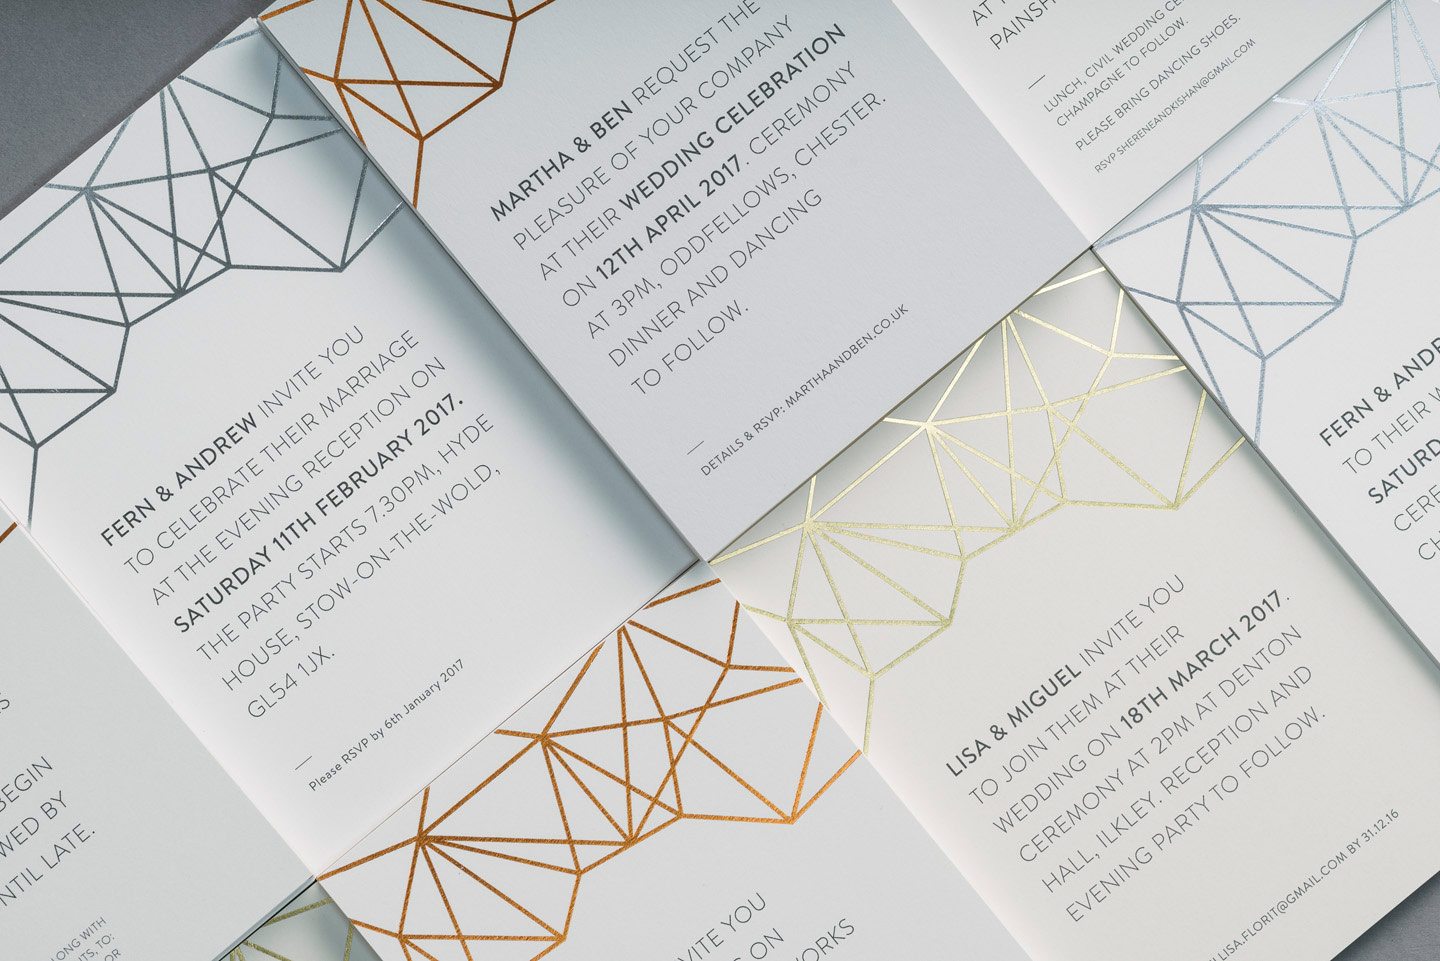 Luxury Wedding Stationery Trends 2018 | The Foil Invite Company Blog